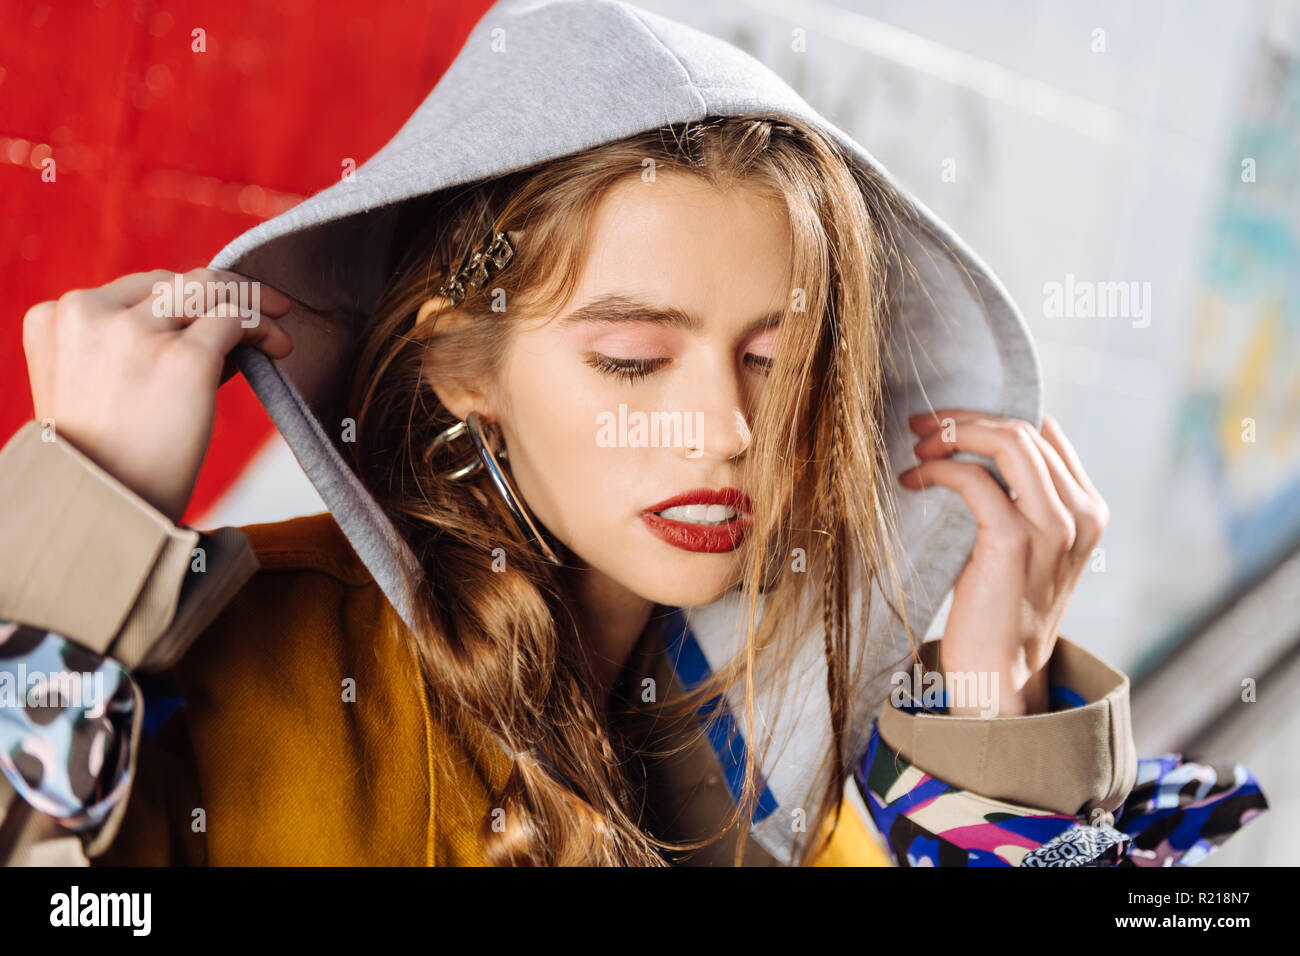 Portrait of beautiful photo model wearing trench coat with hoodie - Stock Image